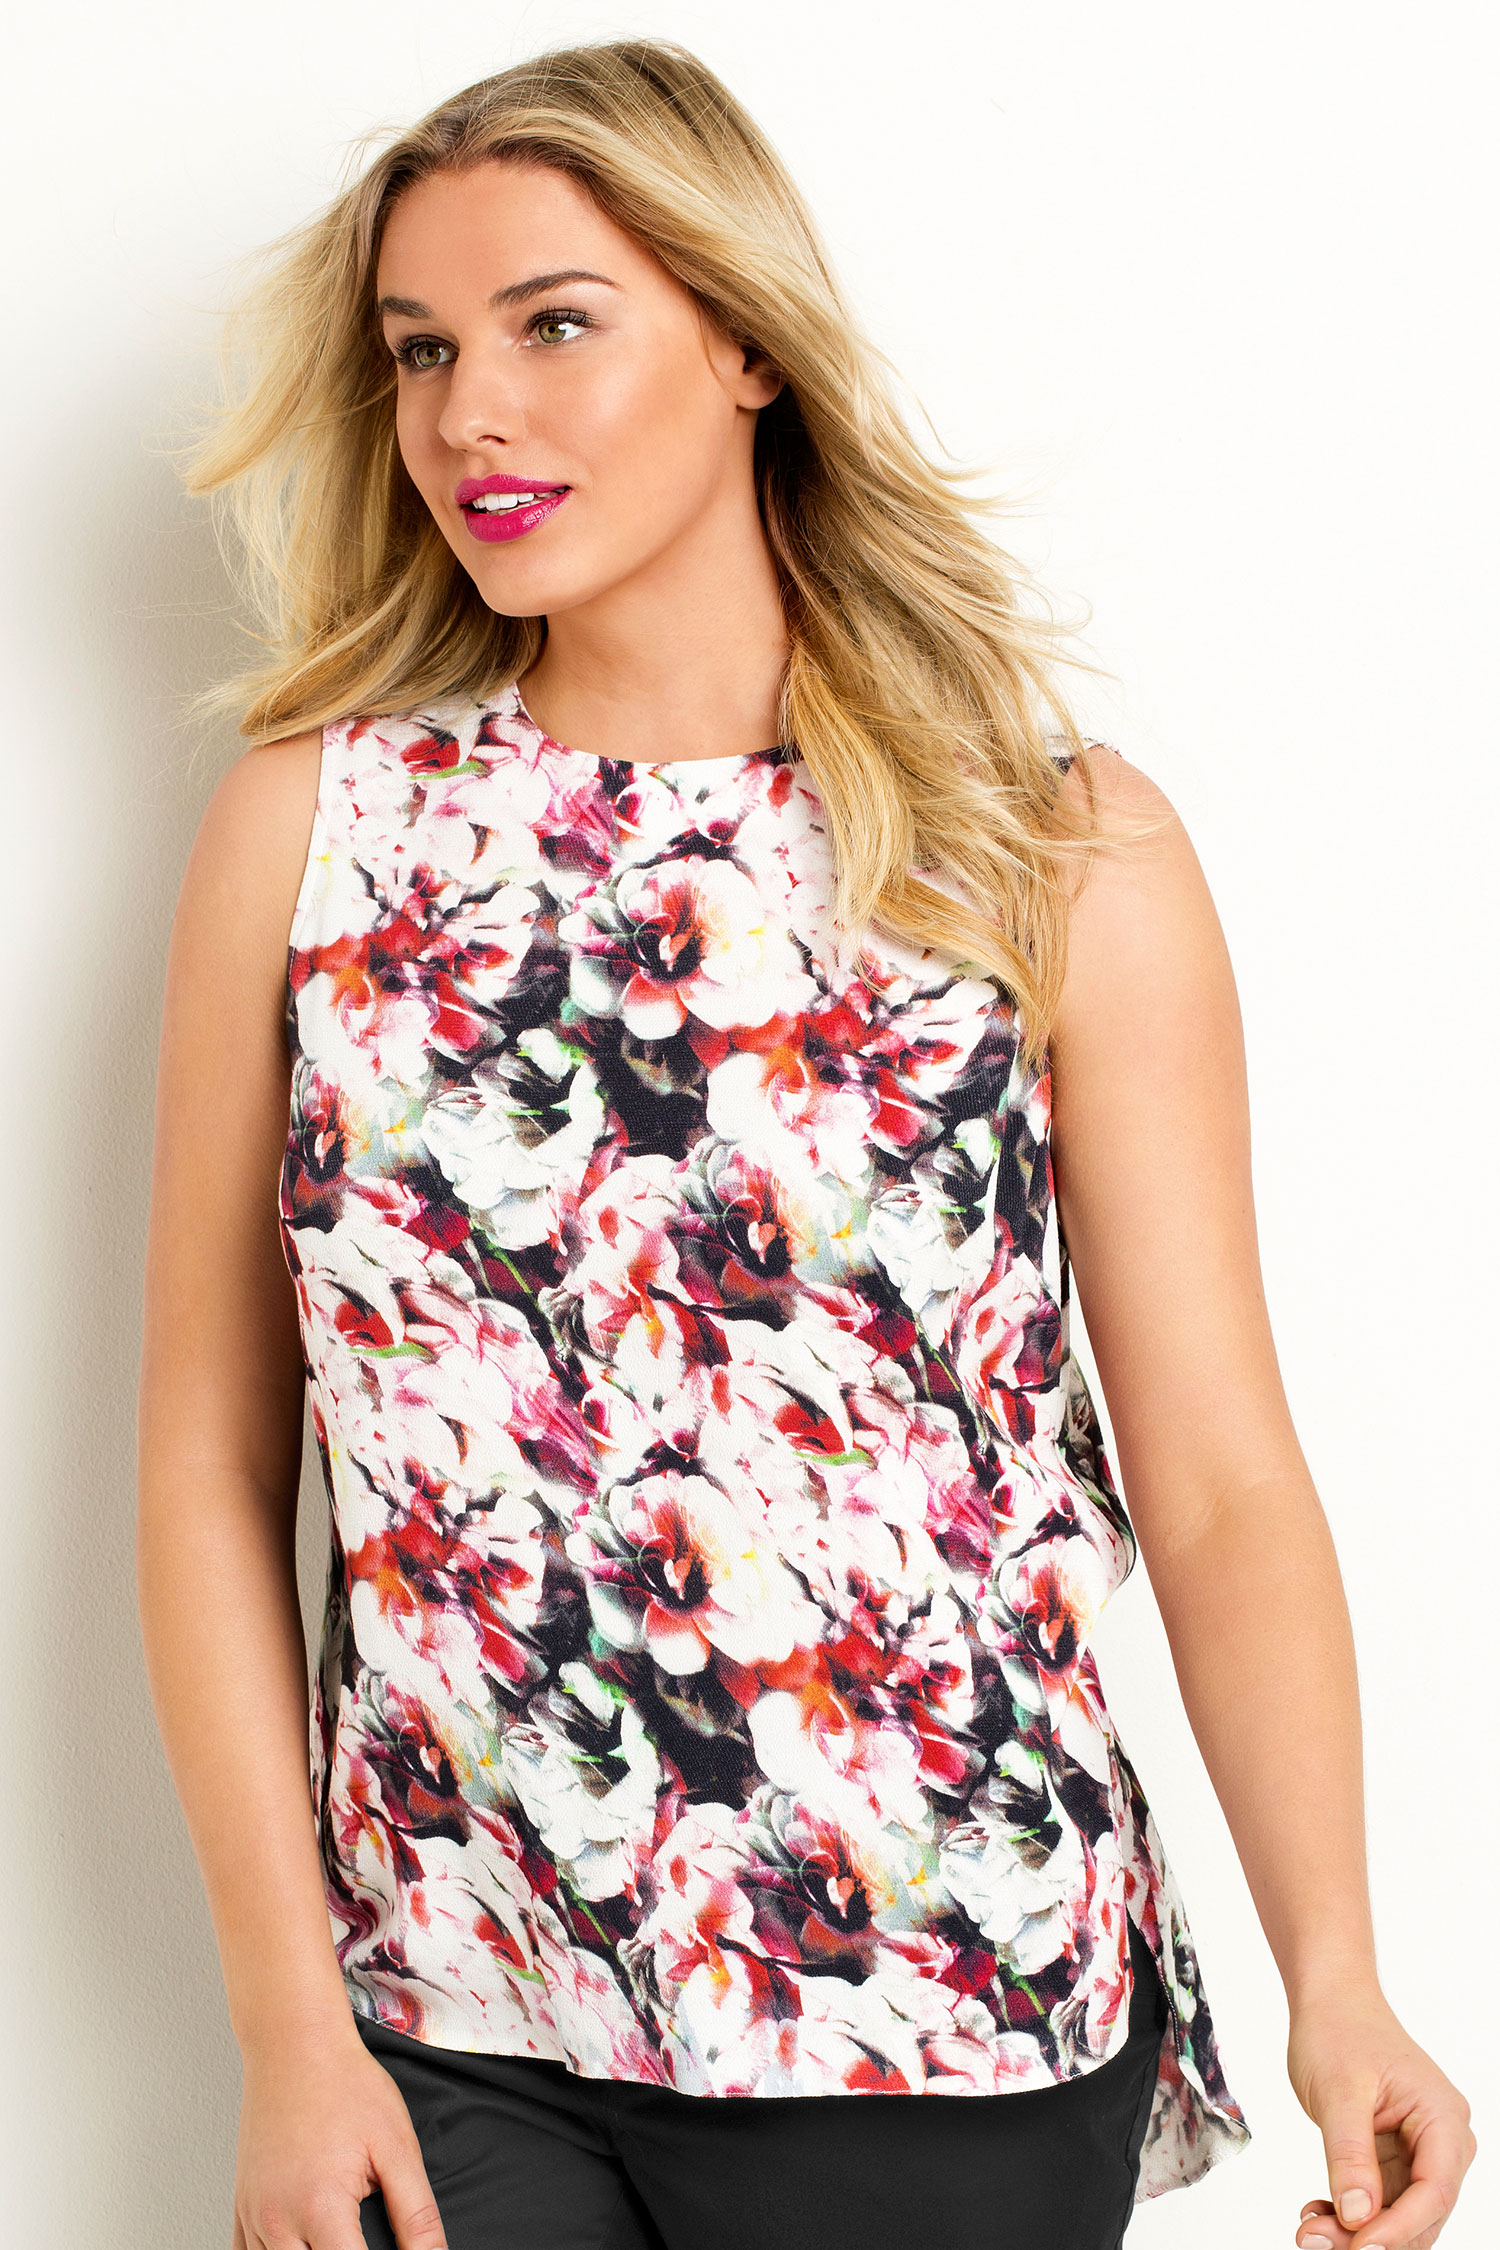 Emerge Woman The Shell Top Style Number: 143035